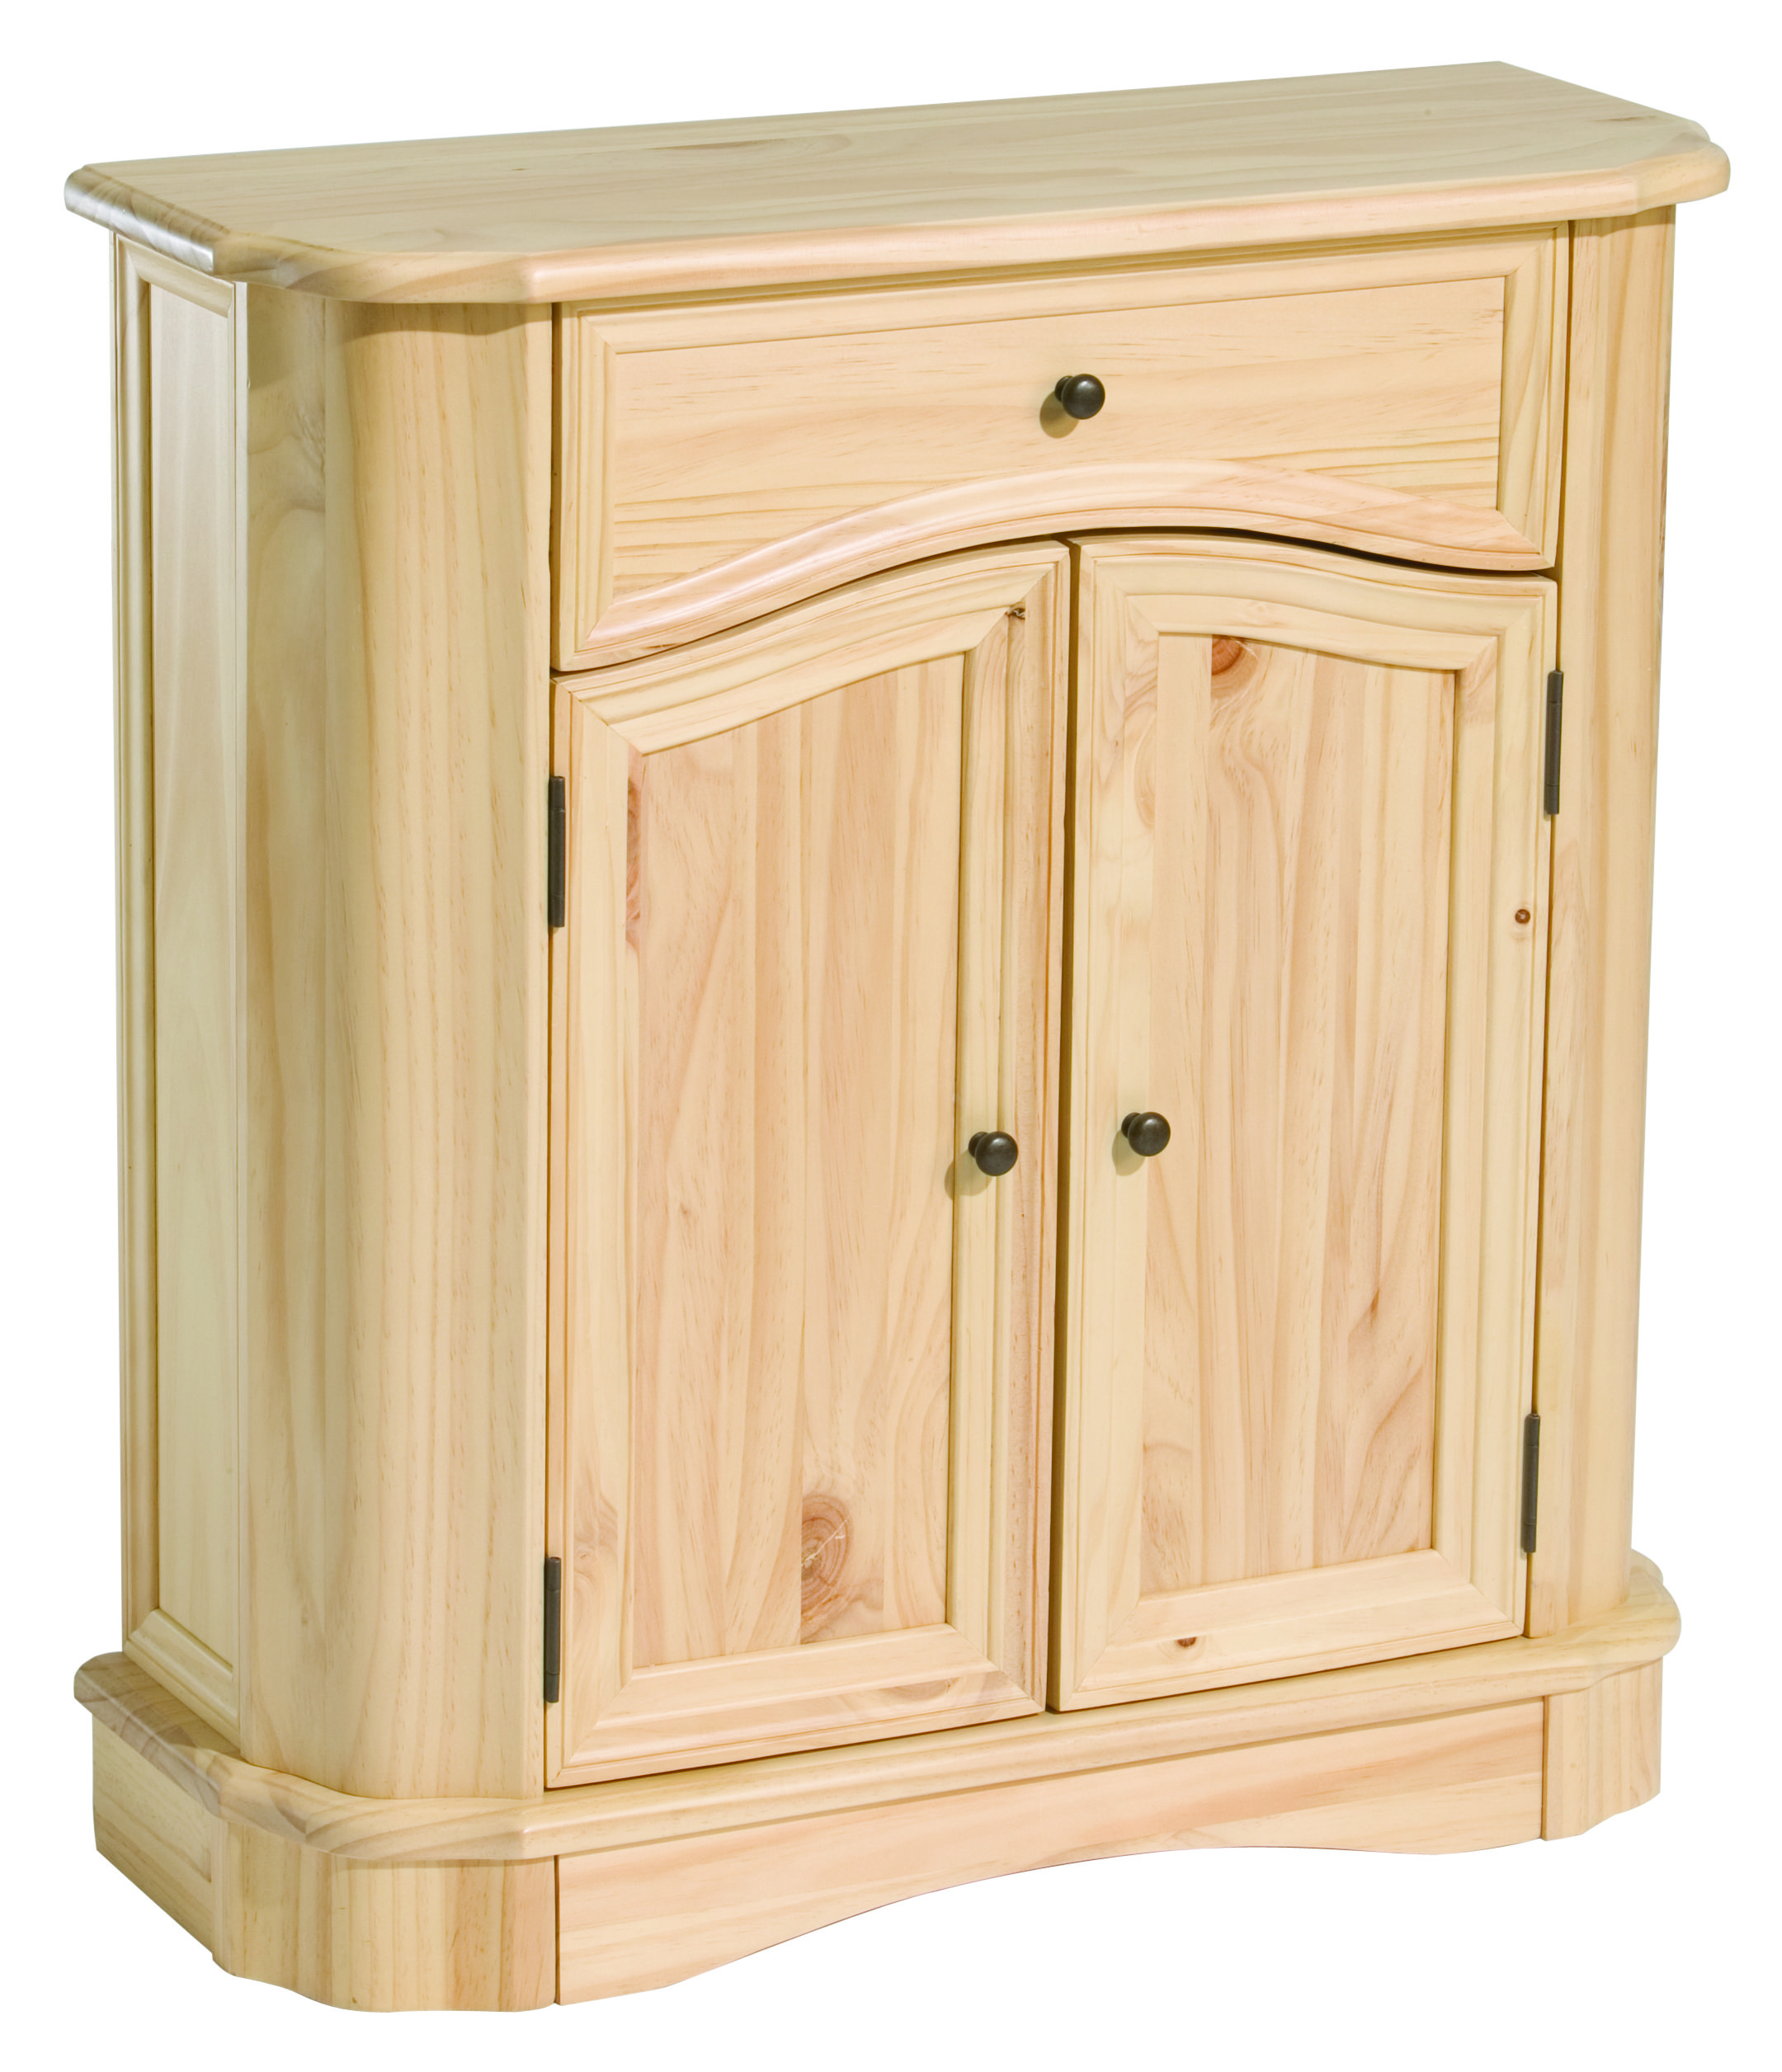 Unfinished Cabinet Cabinet Solidwoodfurniture